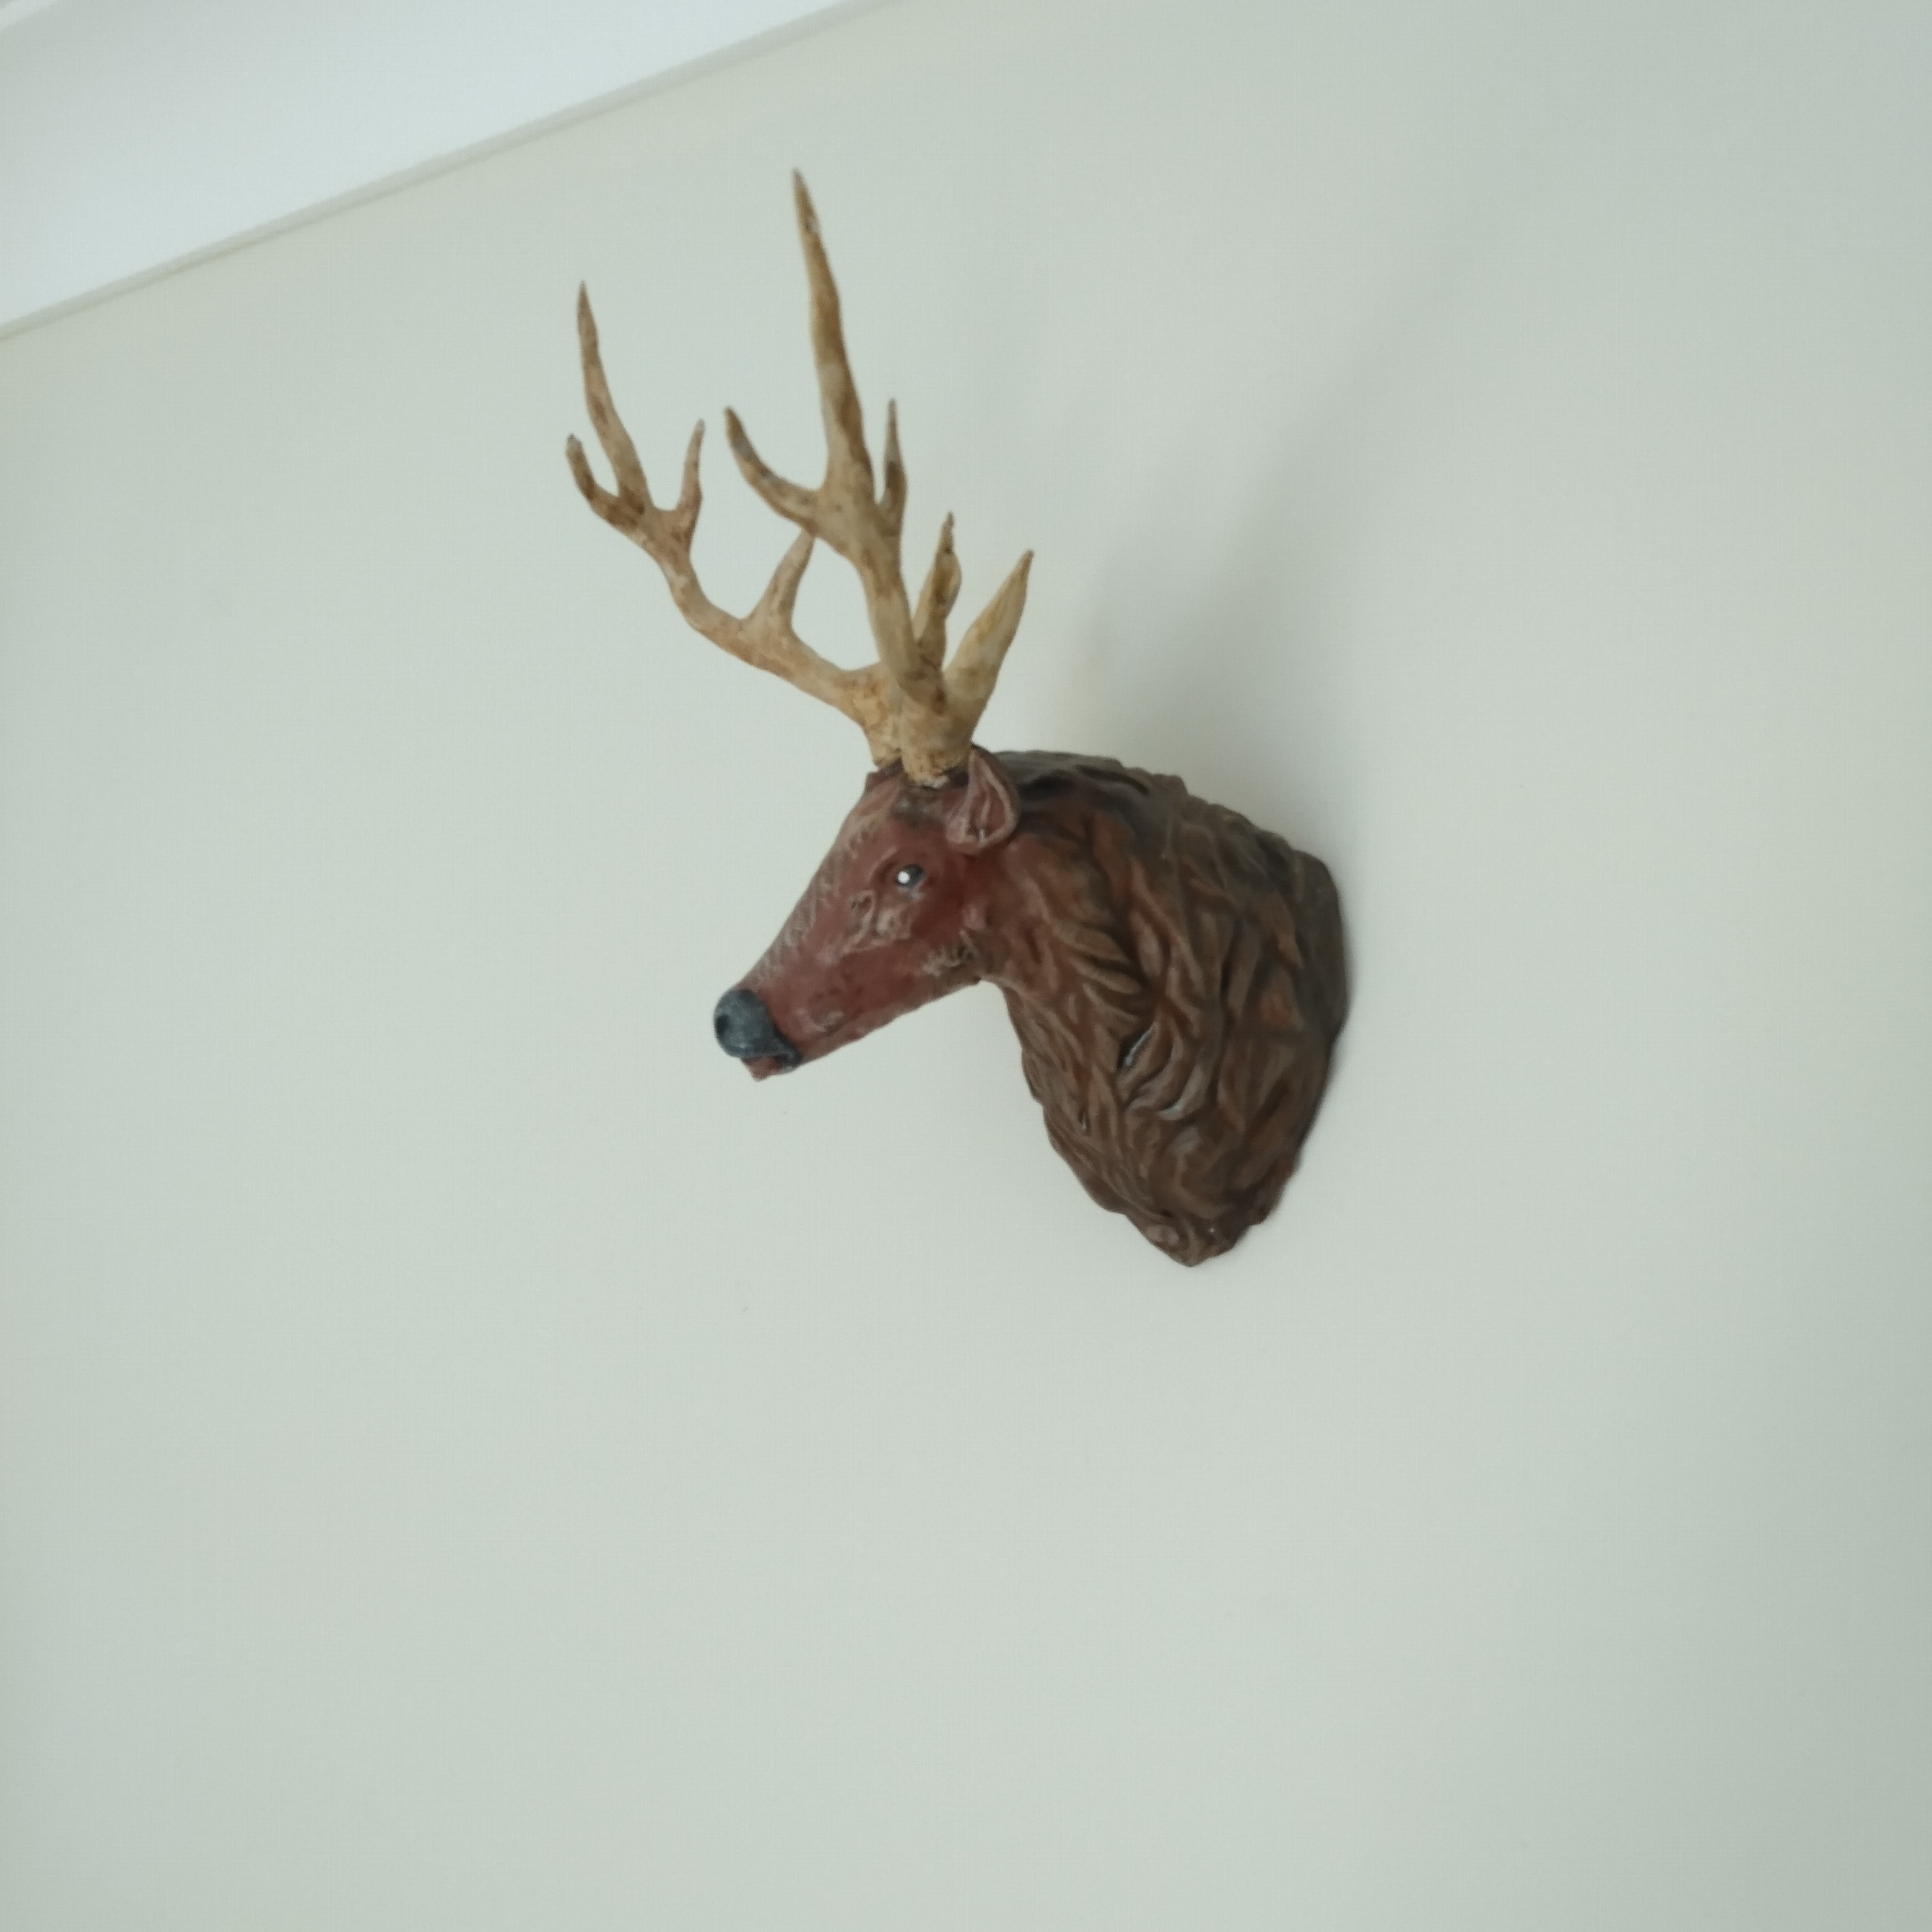 stag 13.png Download free STL file Stag Trophy • 3D printing object, DFB93